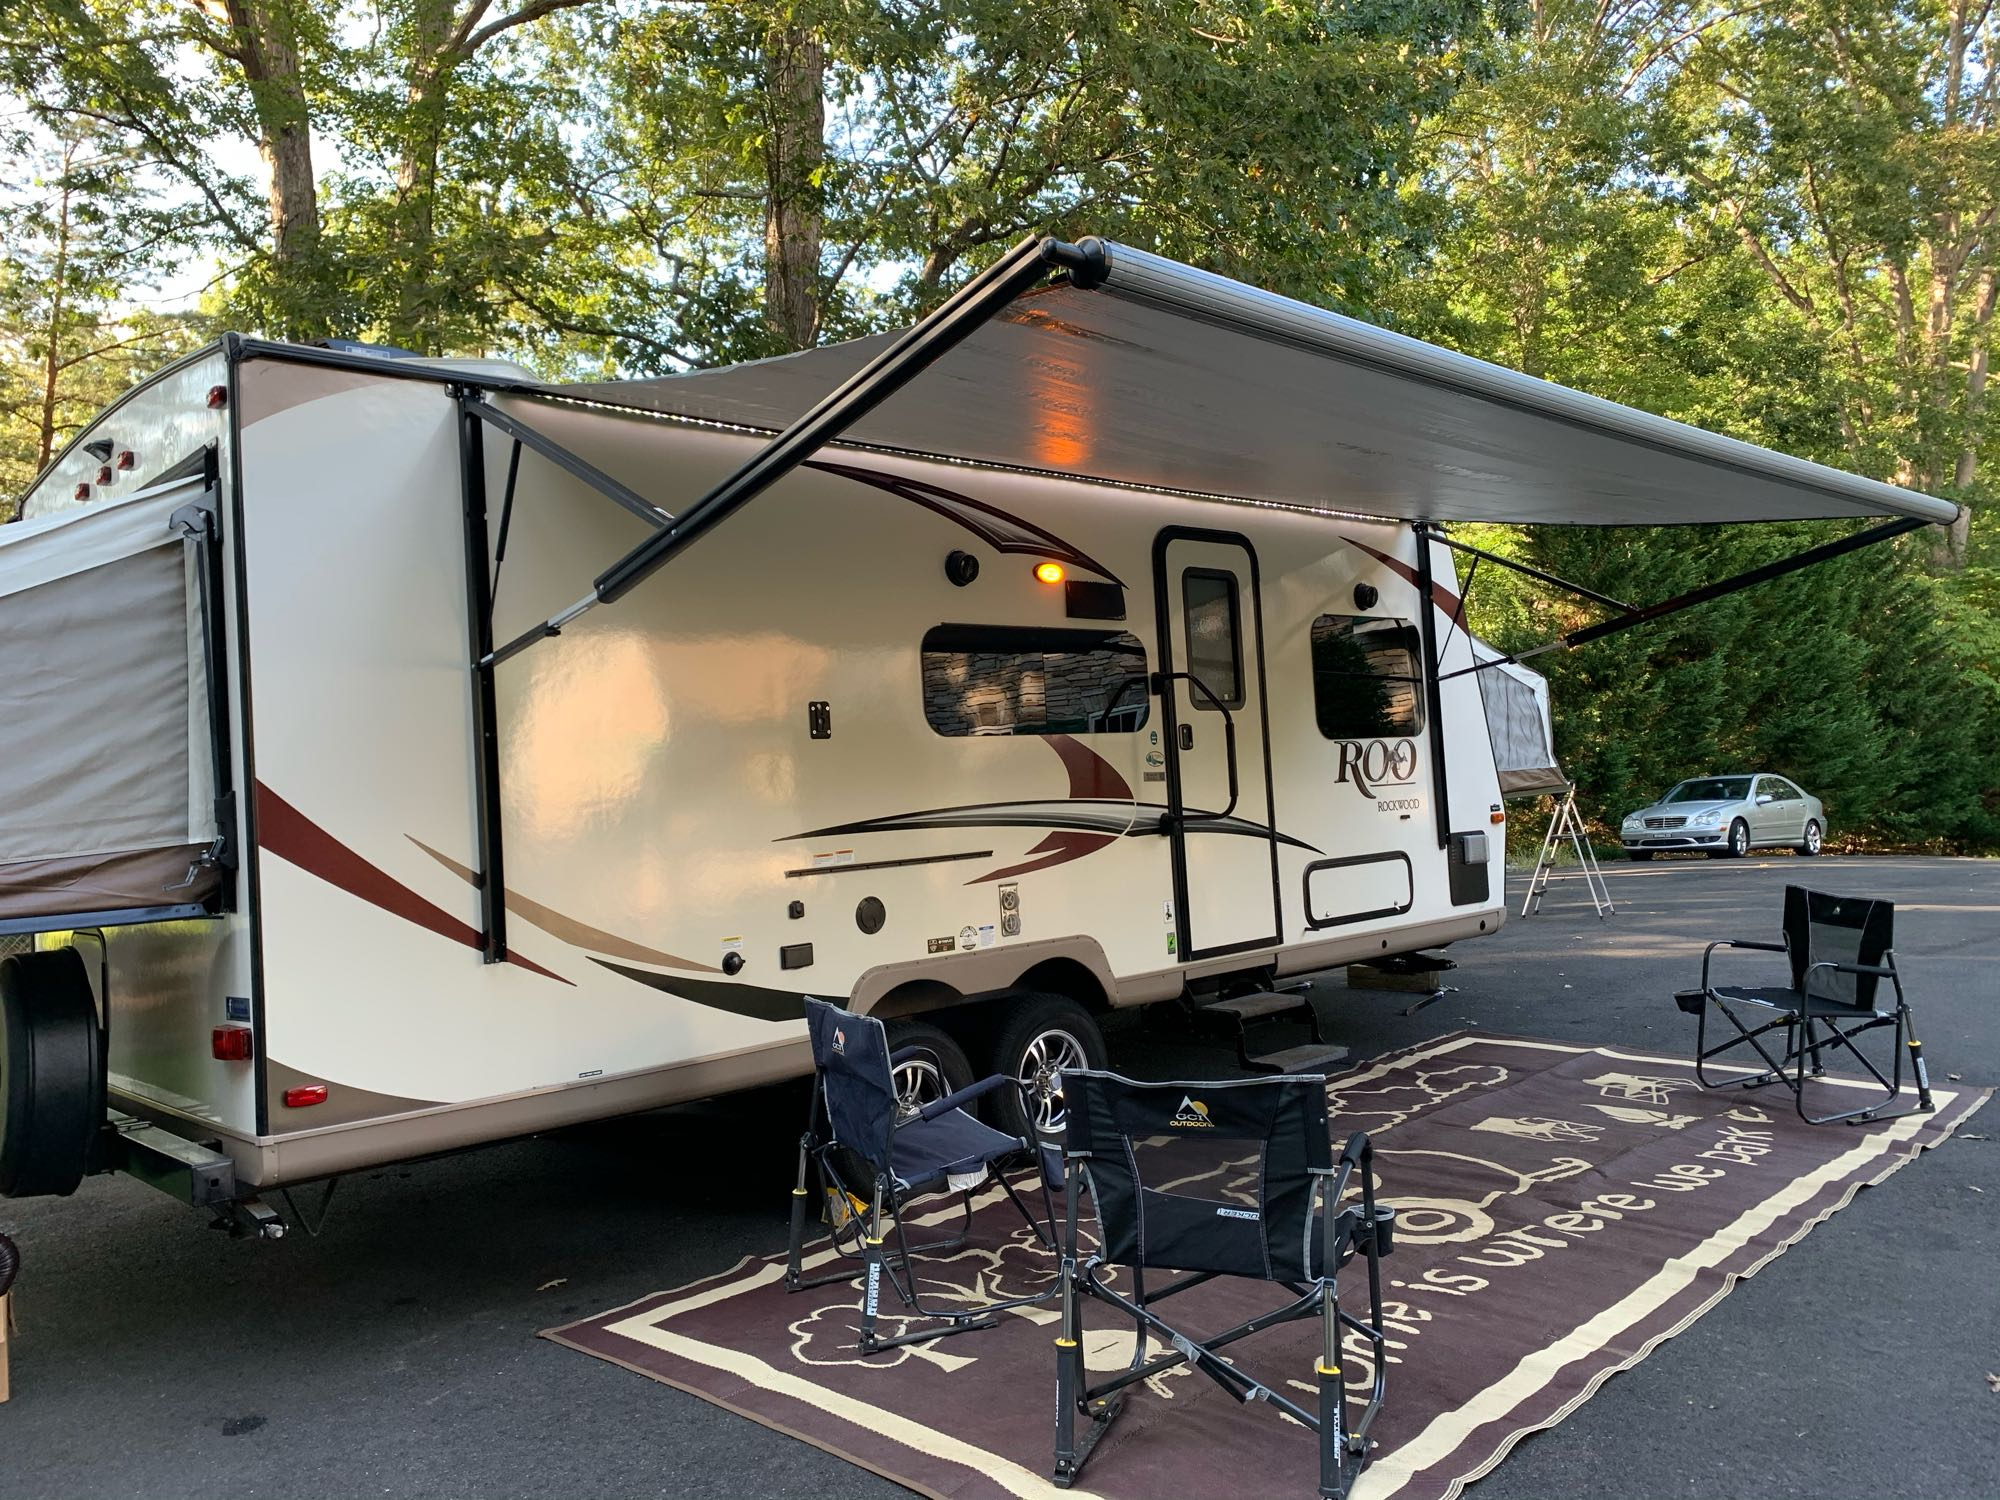 Extra rug and 3 chairs. Forest River Rockwood Roo 233S 2018